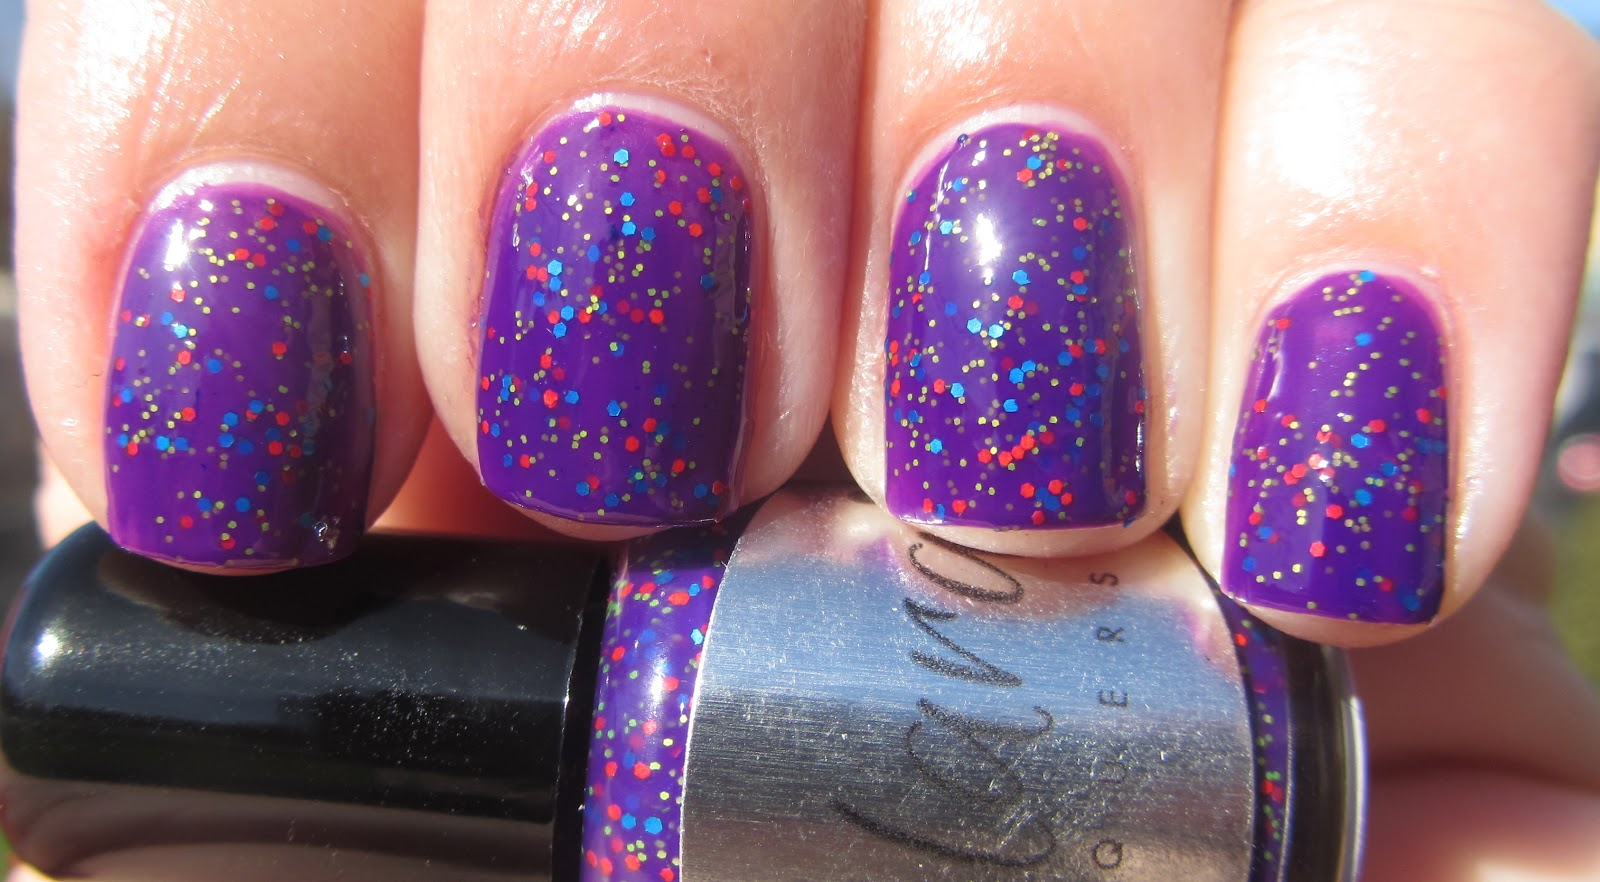 d8d133ed2ce8 Application was easy and I got great glitter payoff. The glitters are a tad  textured so I used one coat of Gelous and my nails were smooth to the touch.